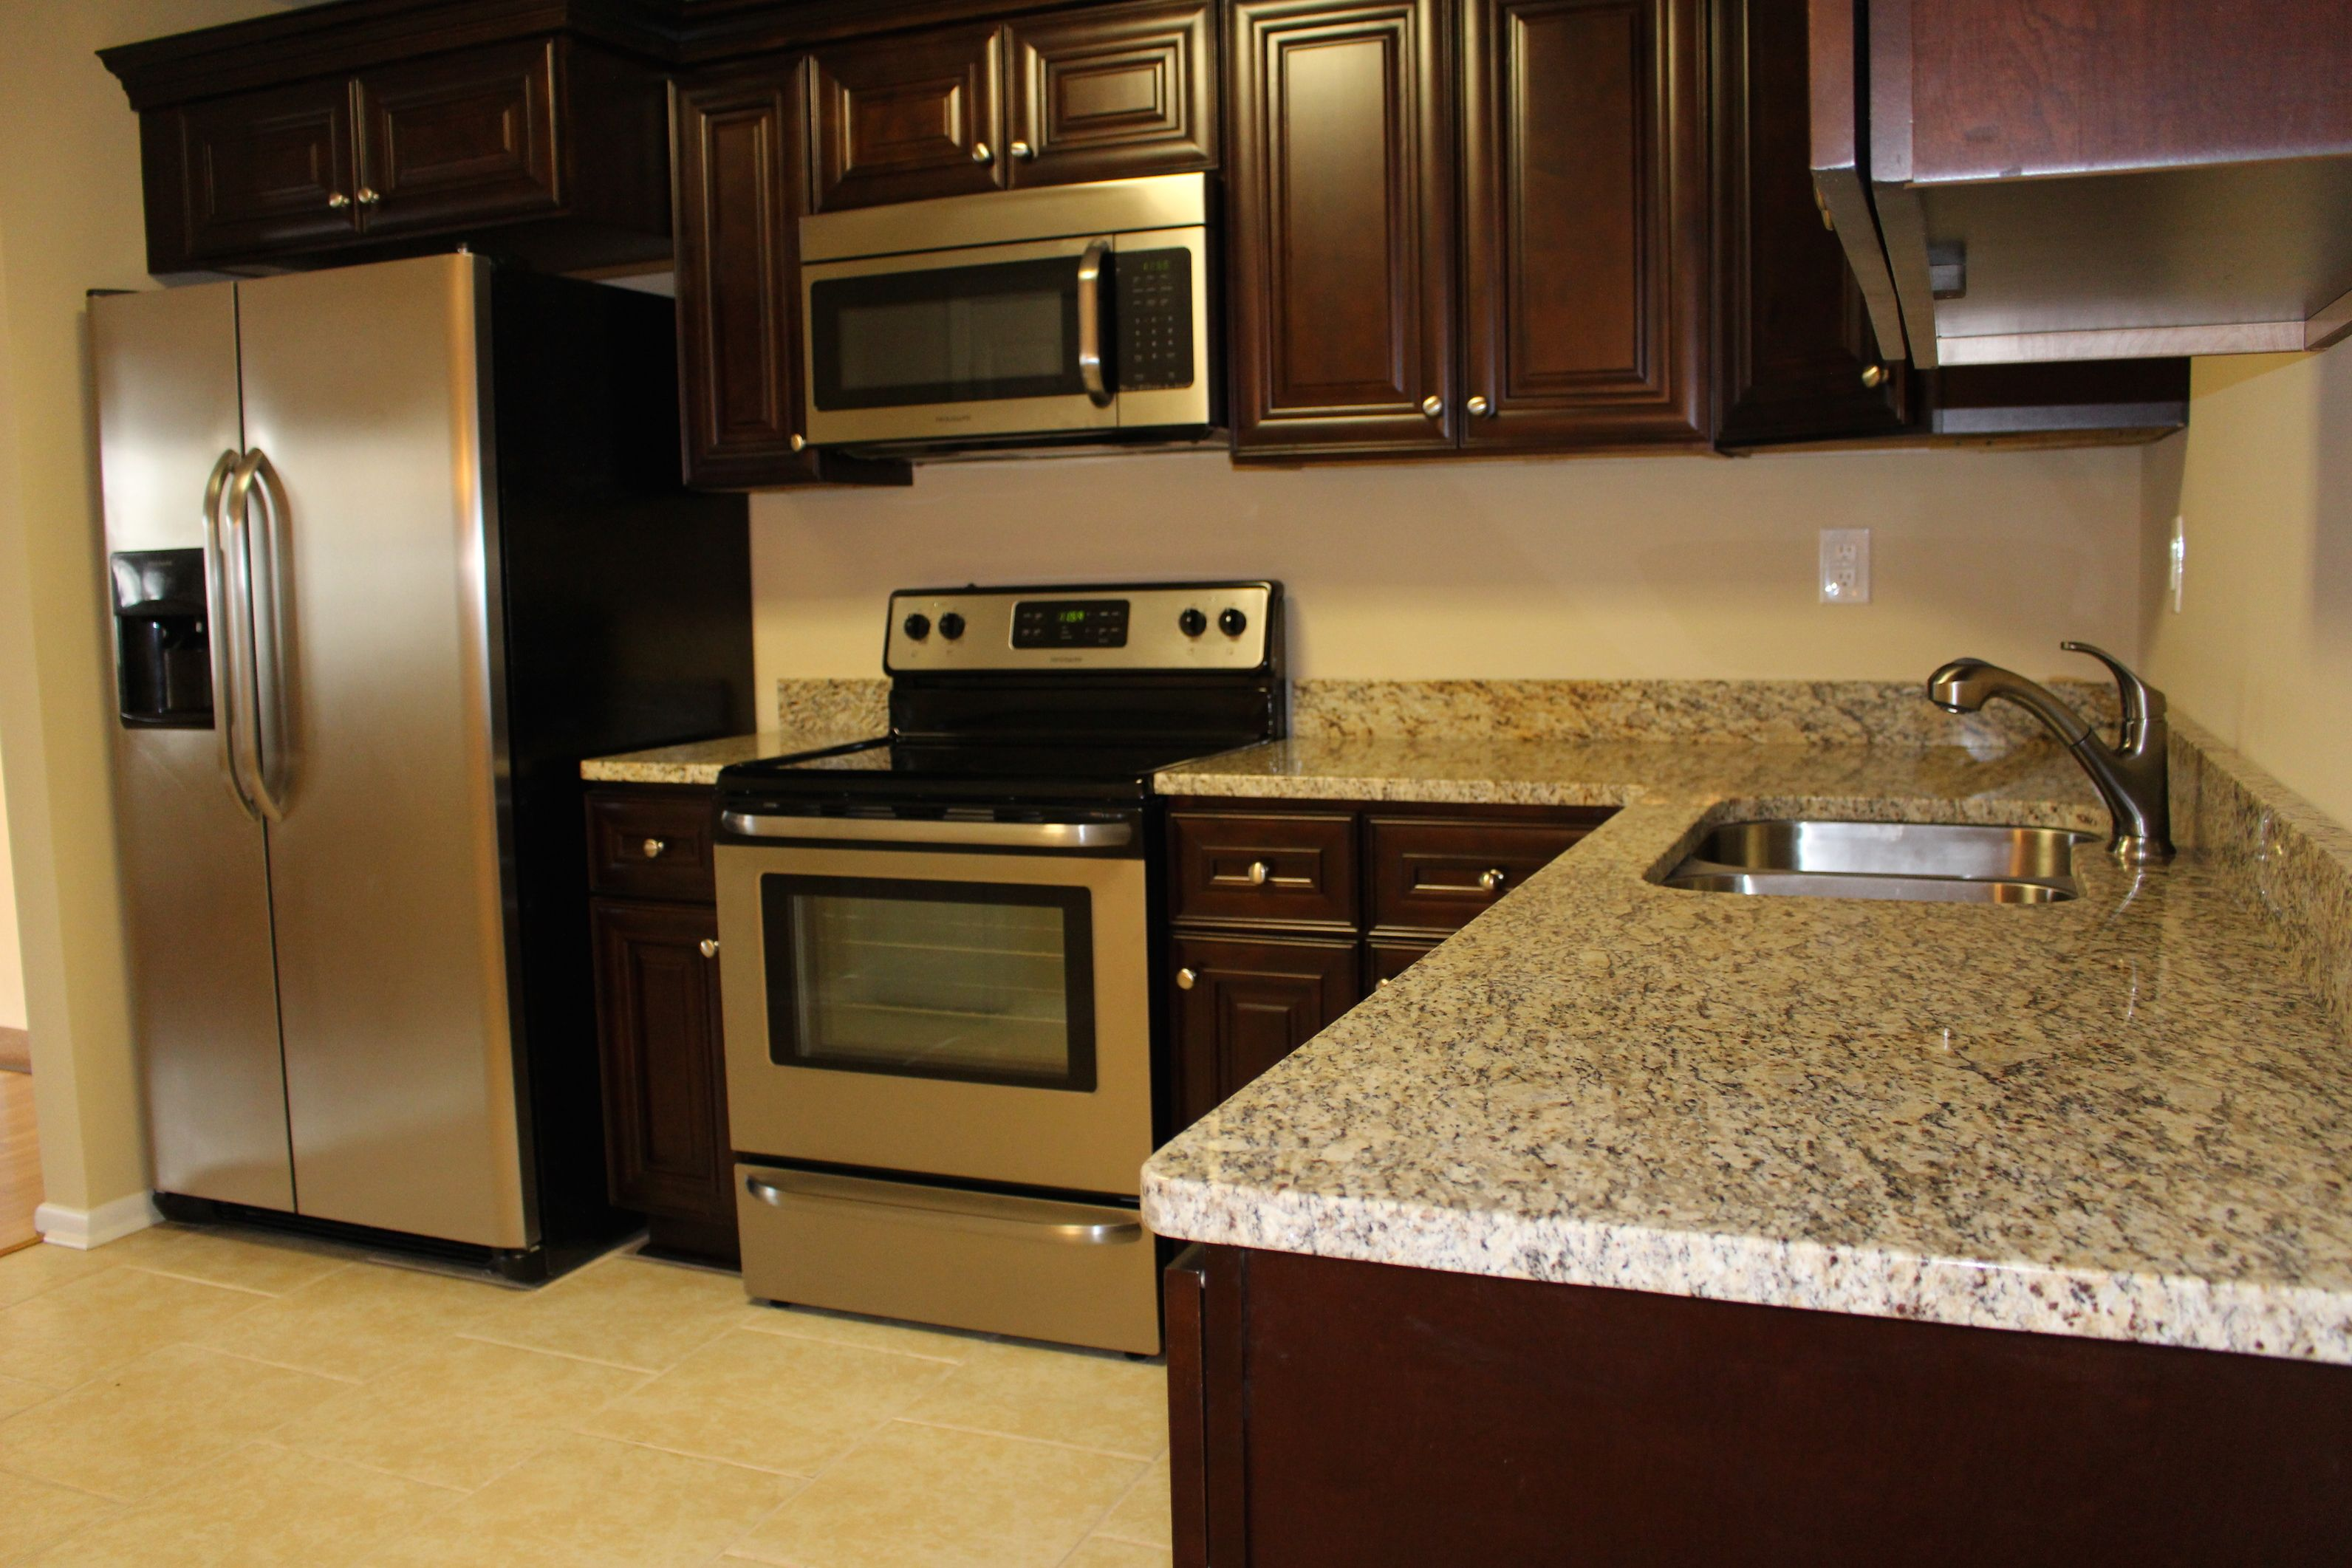 Dark cabinets and light granite countertops add a splash of bling with stainless steel appliances and you have ONE Rockstar Kitchen!